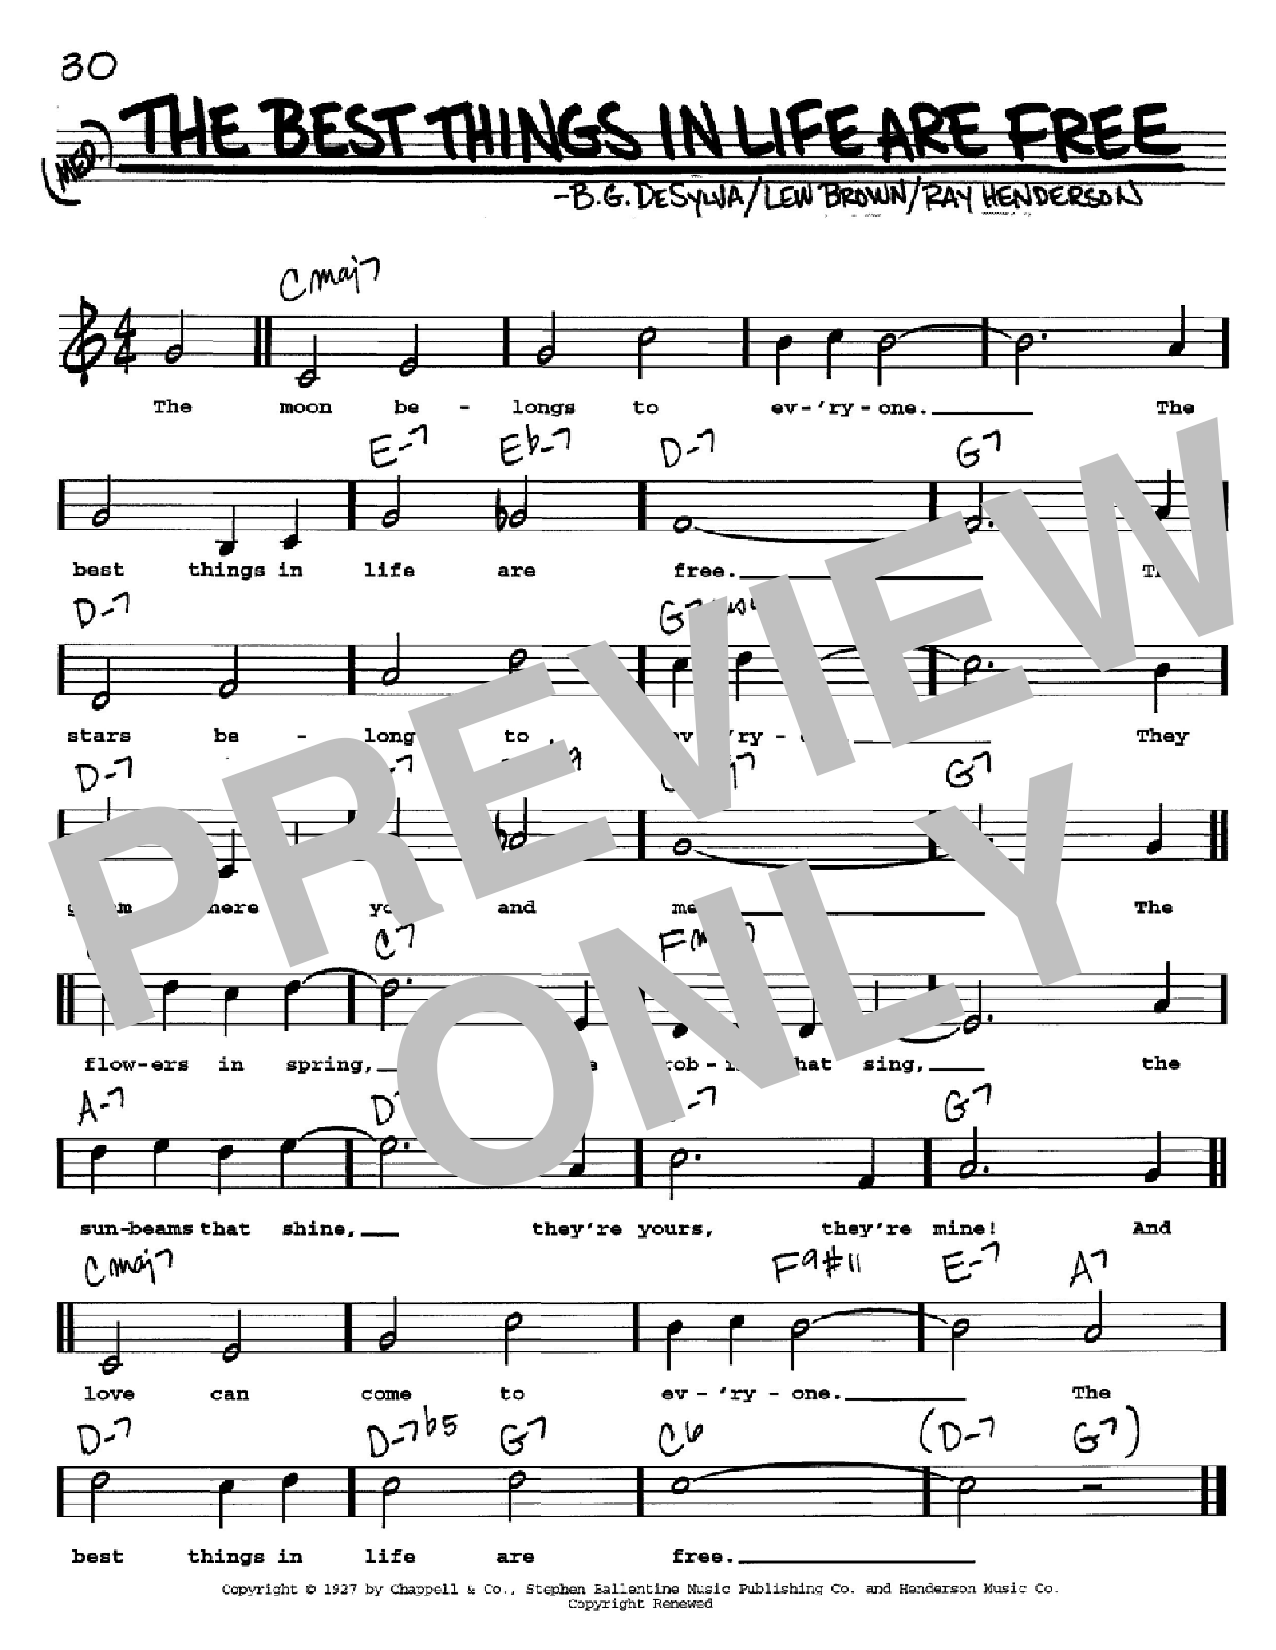 The Best Things In Life Are Free Sheet Music